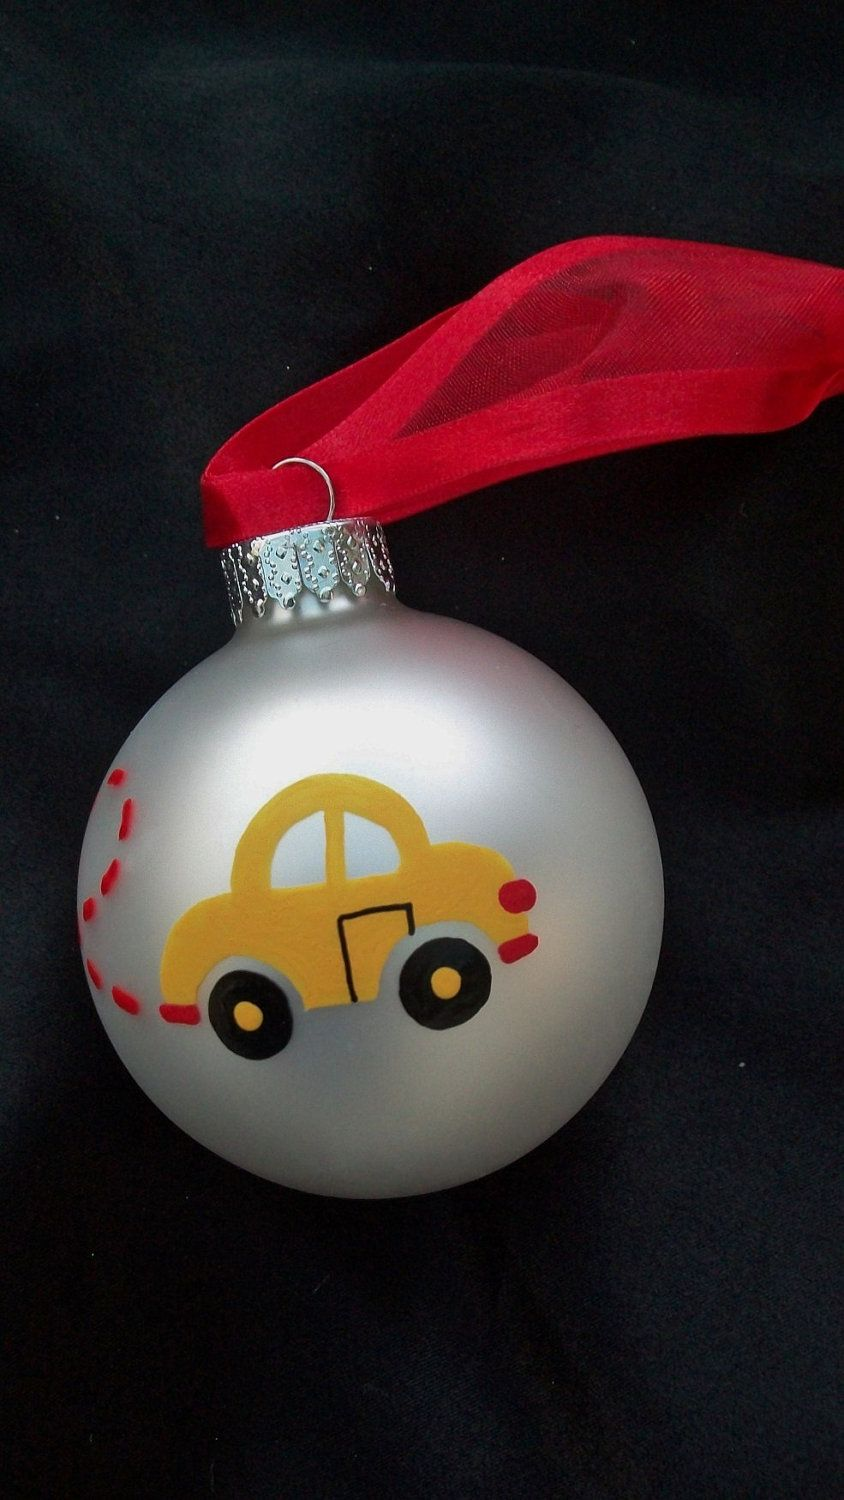 Graduation christmas ornaments - Vw Beetle Personalized Christmas Ornament Hand Painted Yellow Car Ornament First Car New Driver Graduation Going To College Car Lover